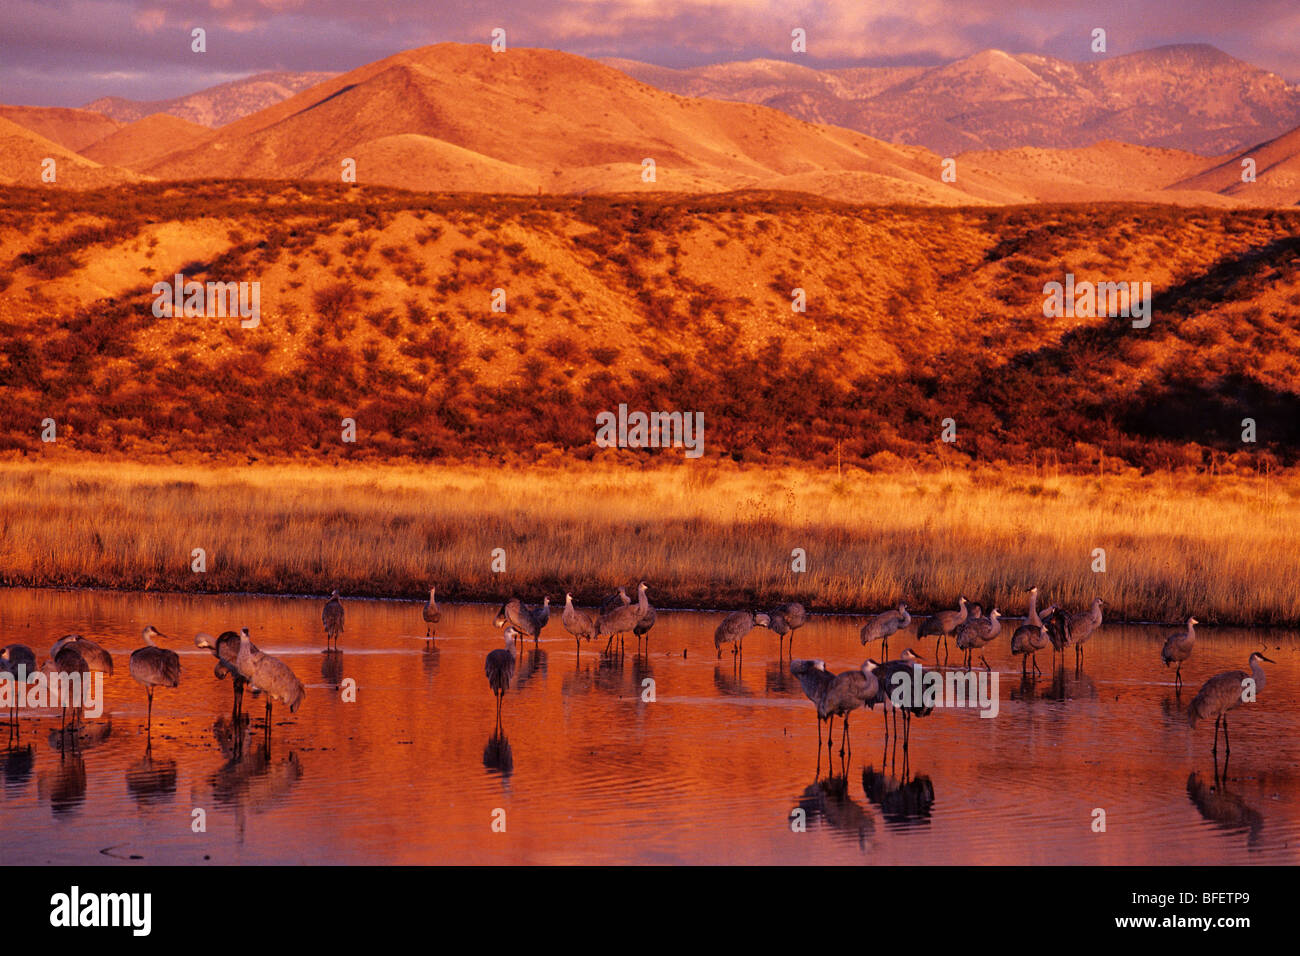 Sandhill cranes (Grus canadensis) at dawn, Bosque del Apache National Wildlife Refuge, New Mexico, USA - Stock Image